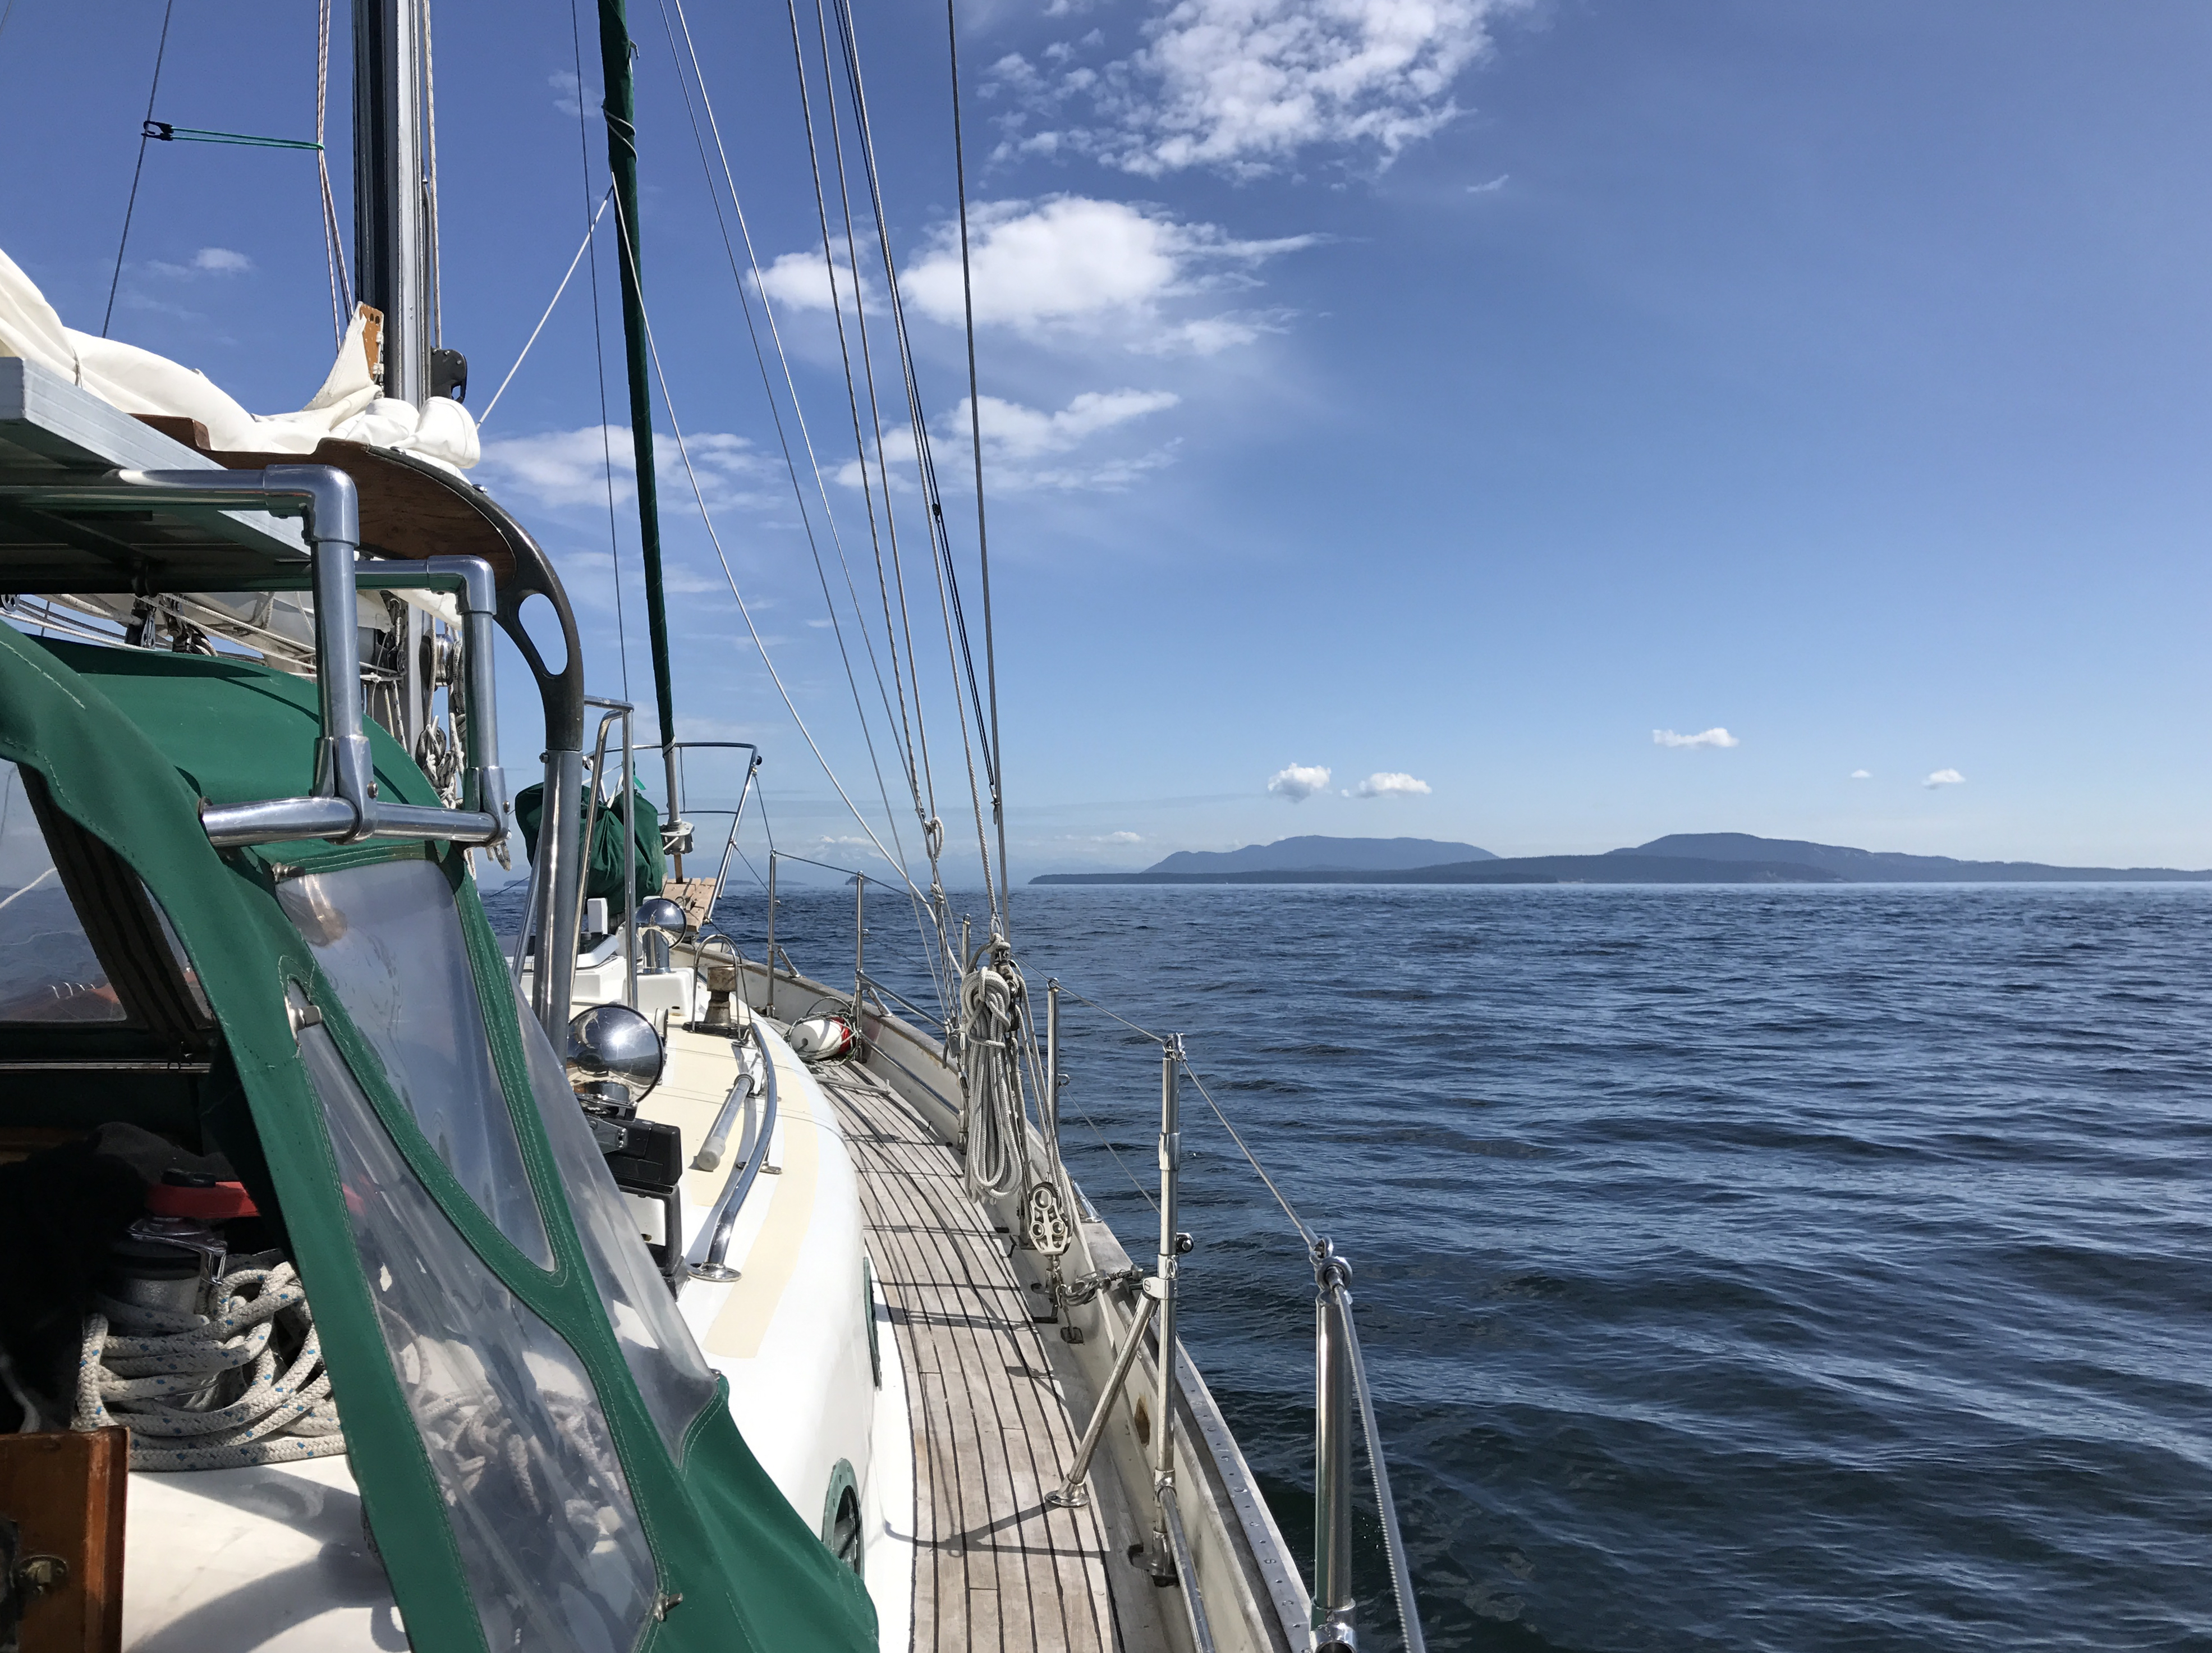 Leaving Bedwell Harbour, we're looking at the Northern San Juan Islands